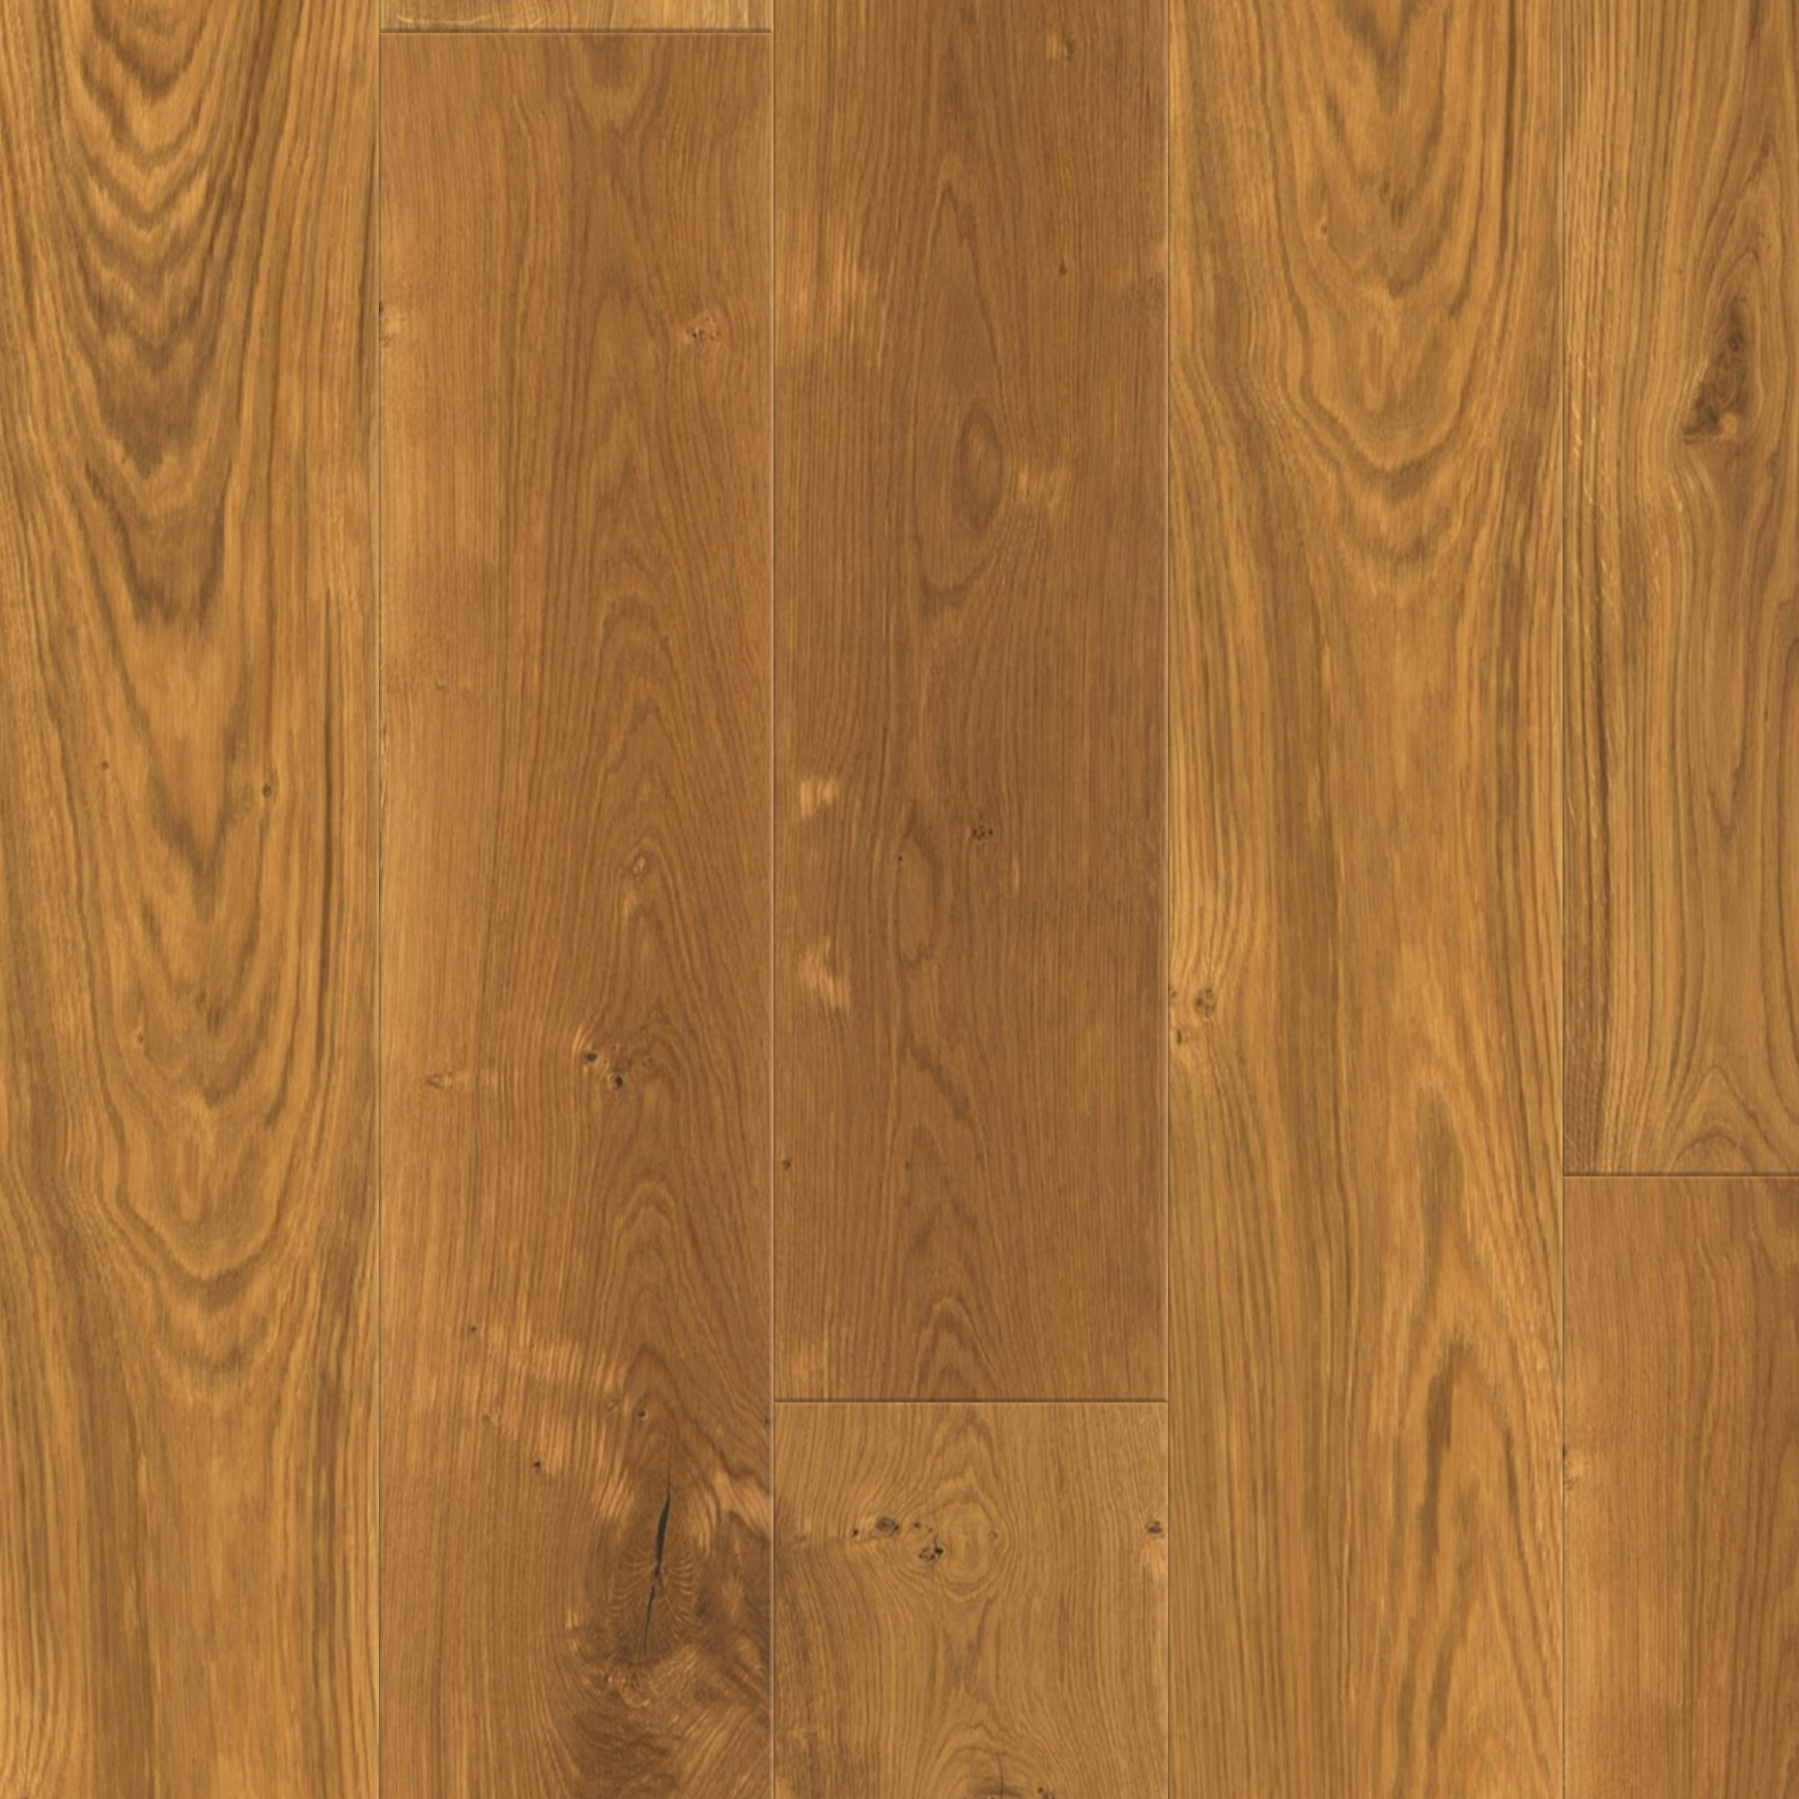 Brushed & Oiled<br>2645